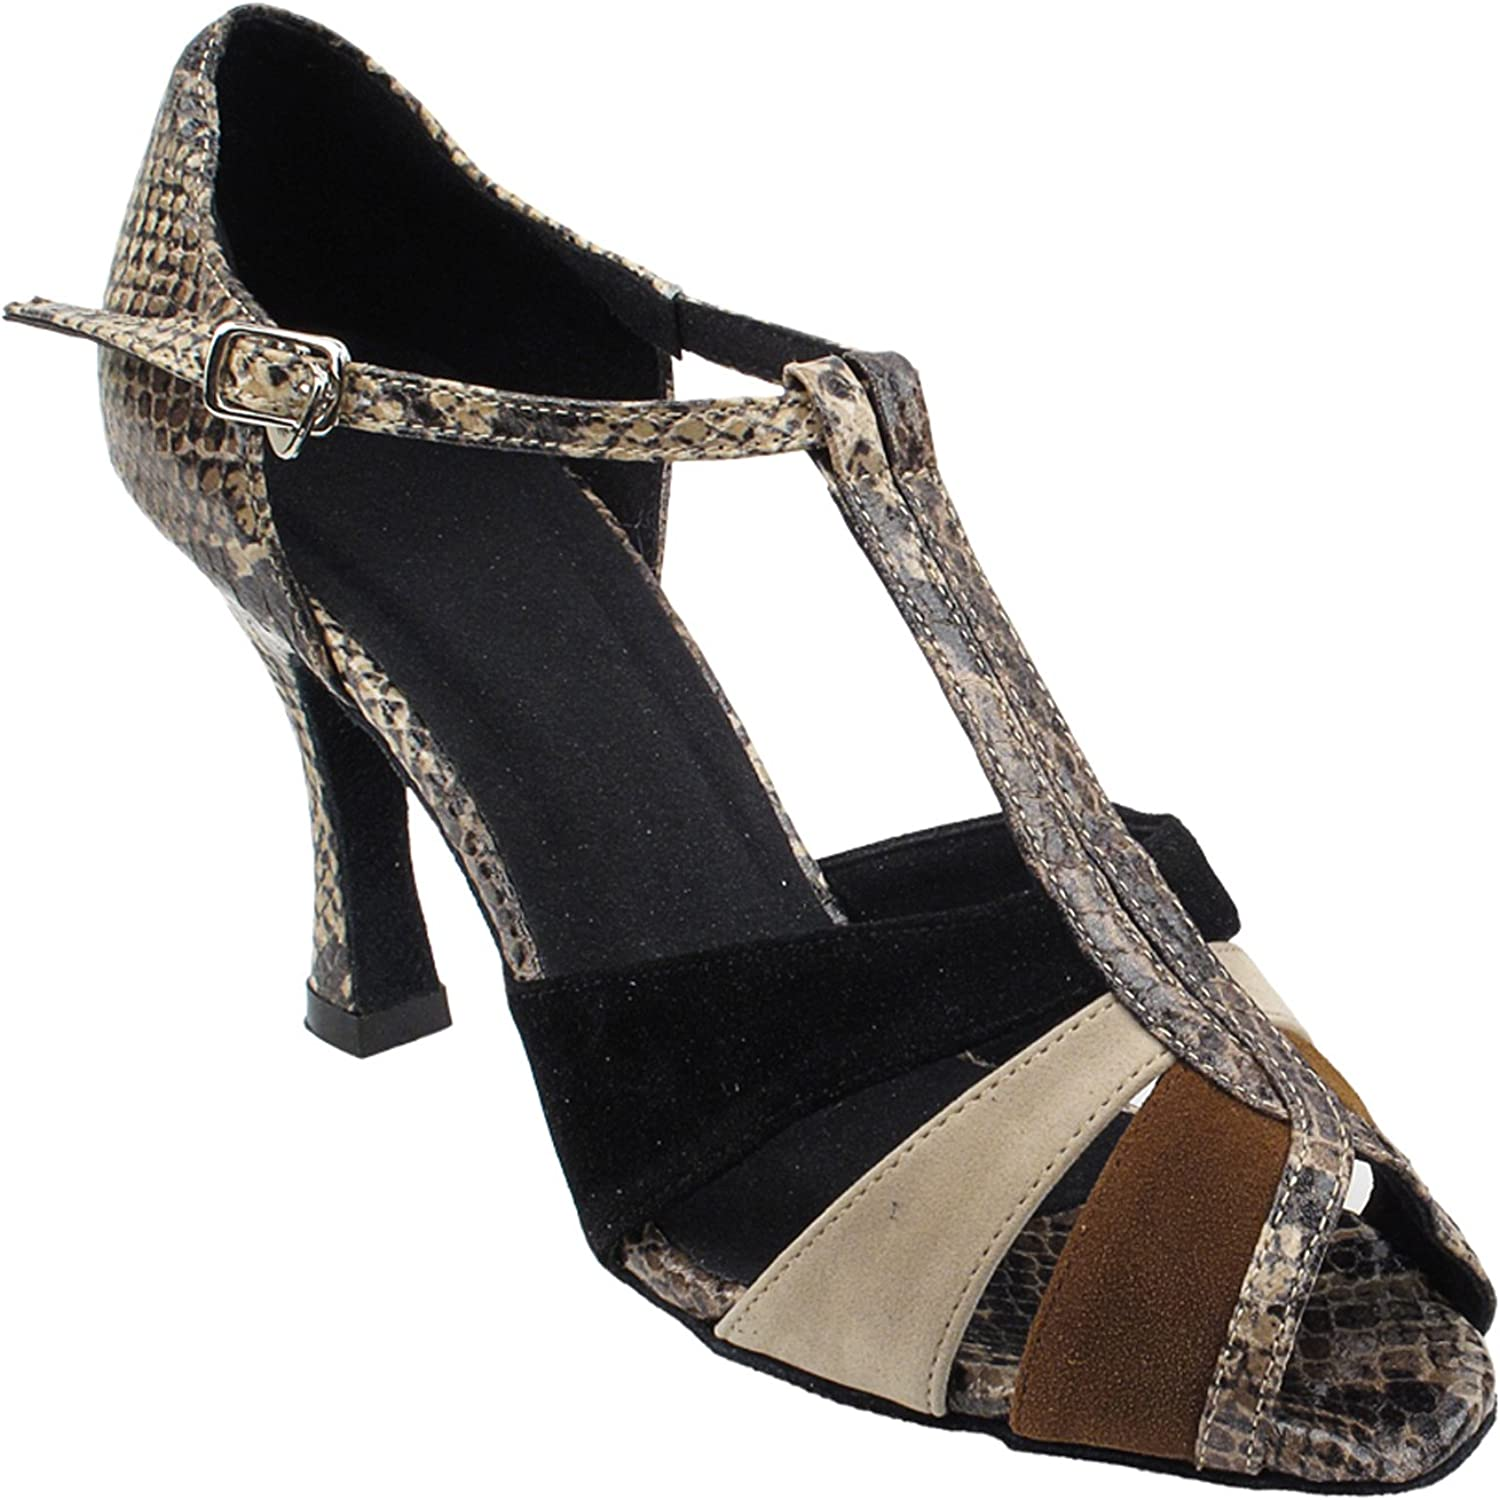 Party Party Beige Dance shoes  SERA7037 Brown Nubuck Snake, 2.5  Heel, Size 8